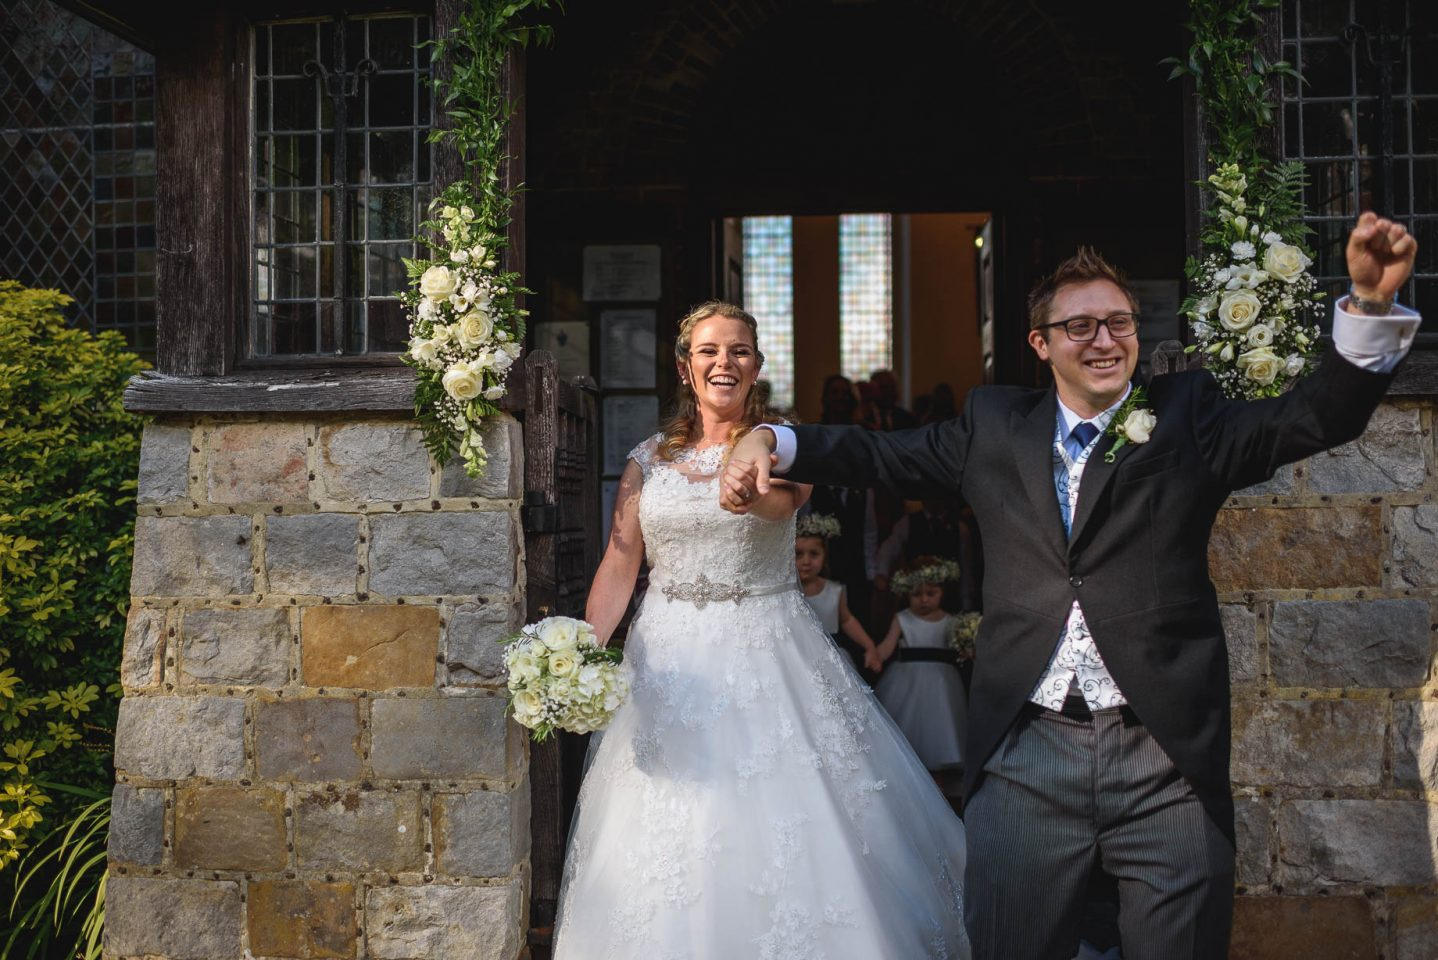 Surrey wedding photography in Pirbright by Guy Collier